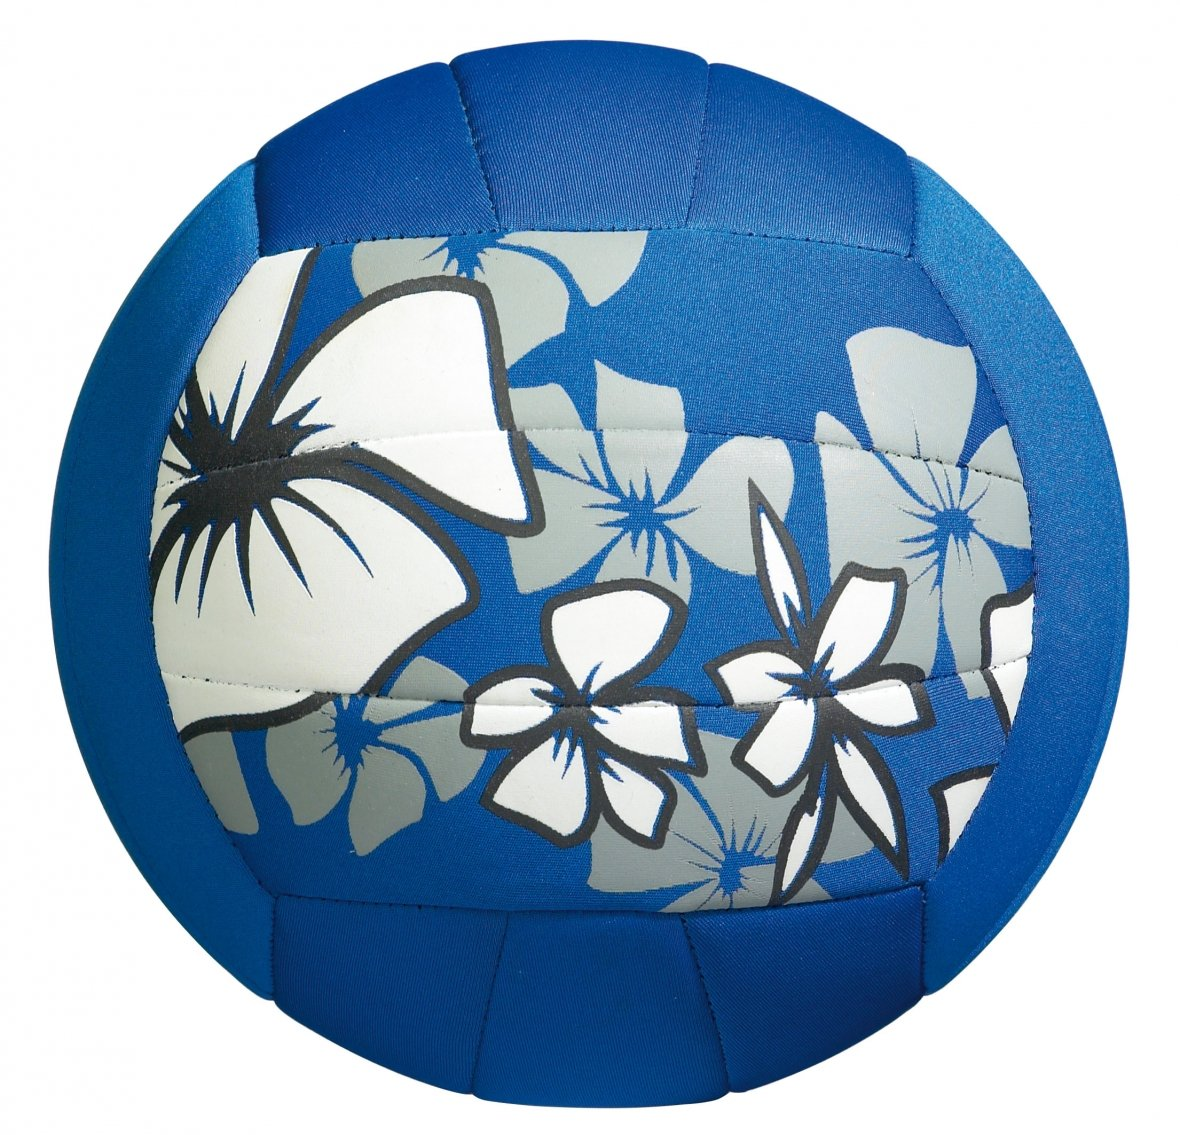 Large beach ball, blue